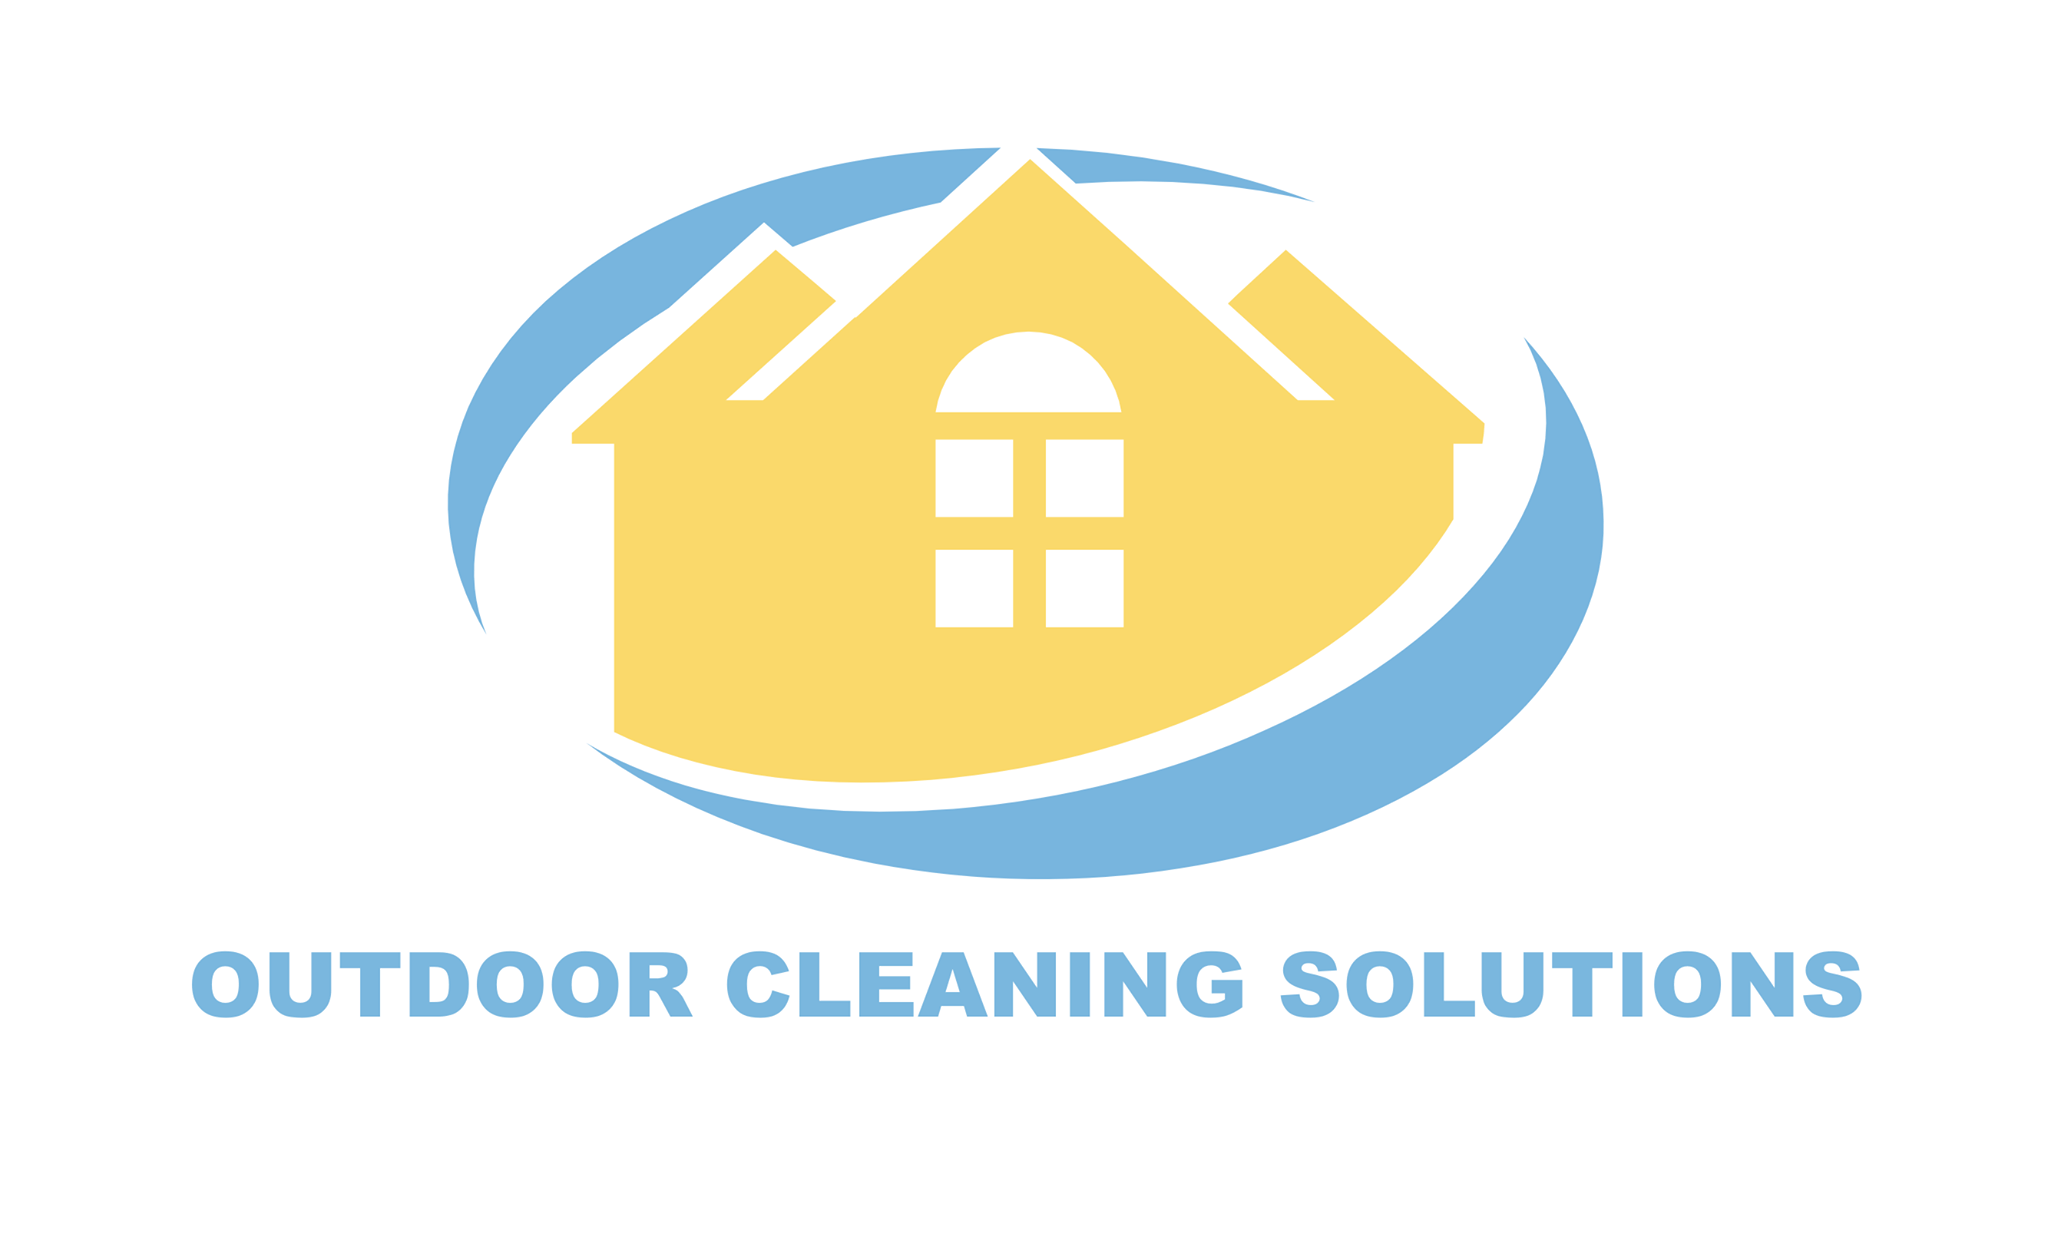 Logo of Outdoor Cleaning Solutions Property Maintenance And Repairs In Airdrie, Lanarkshire